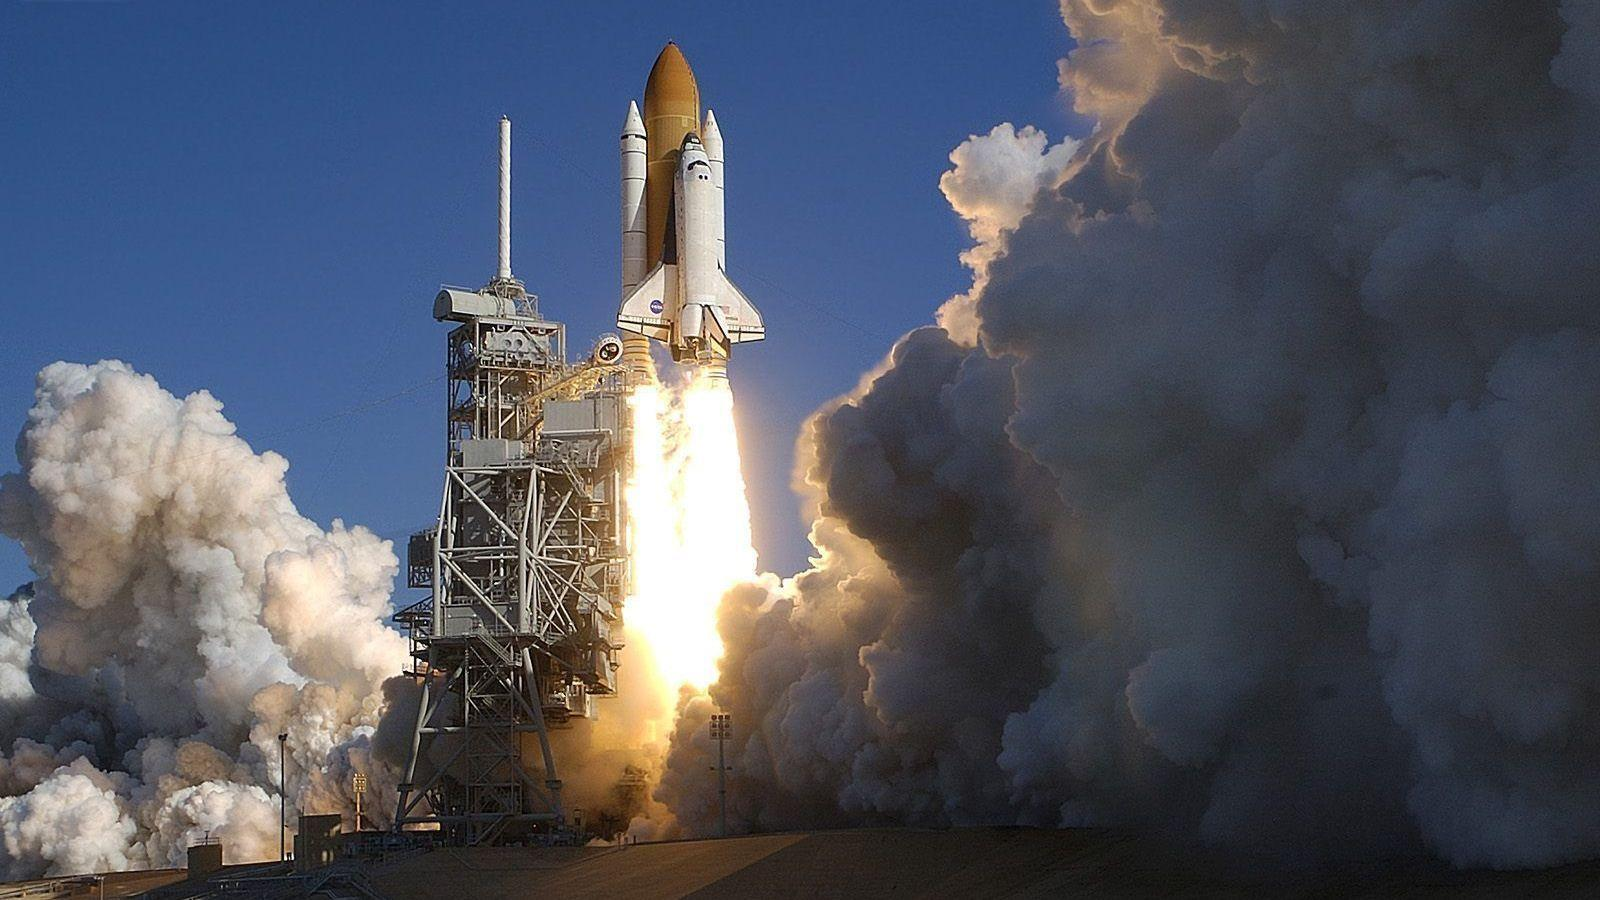 Space Shuttle Columbia Launched in 2003